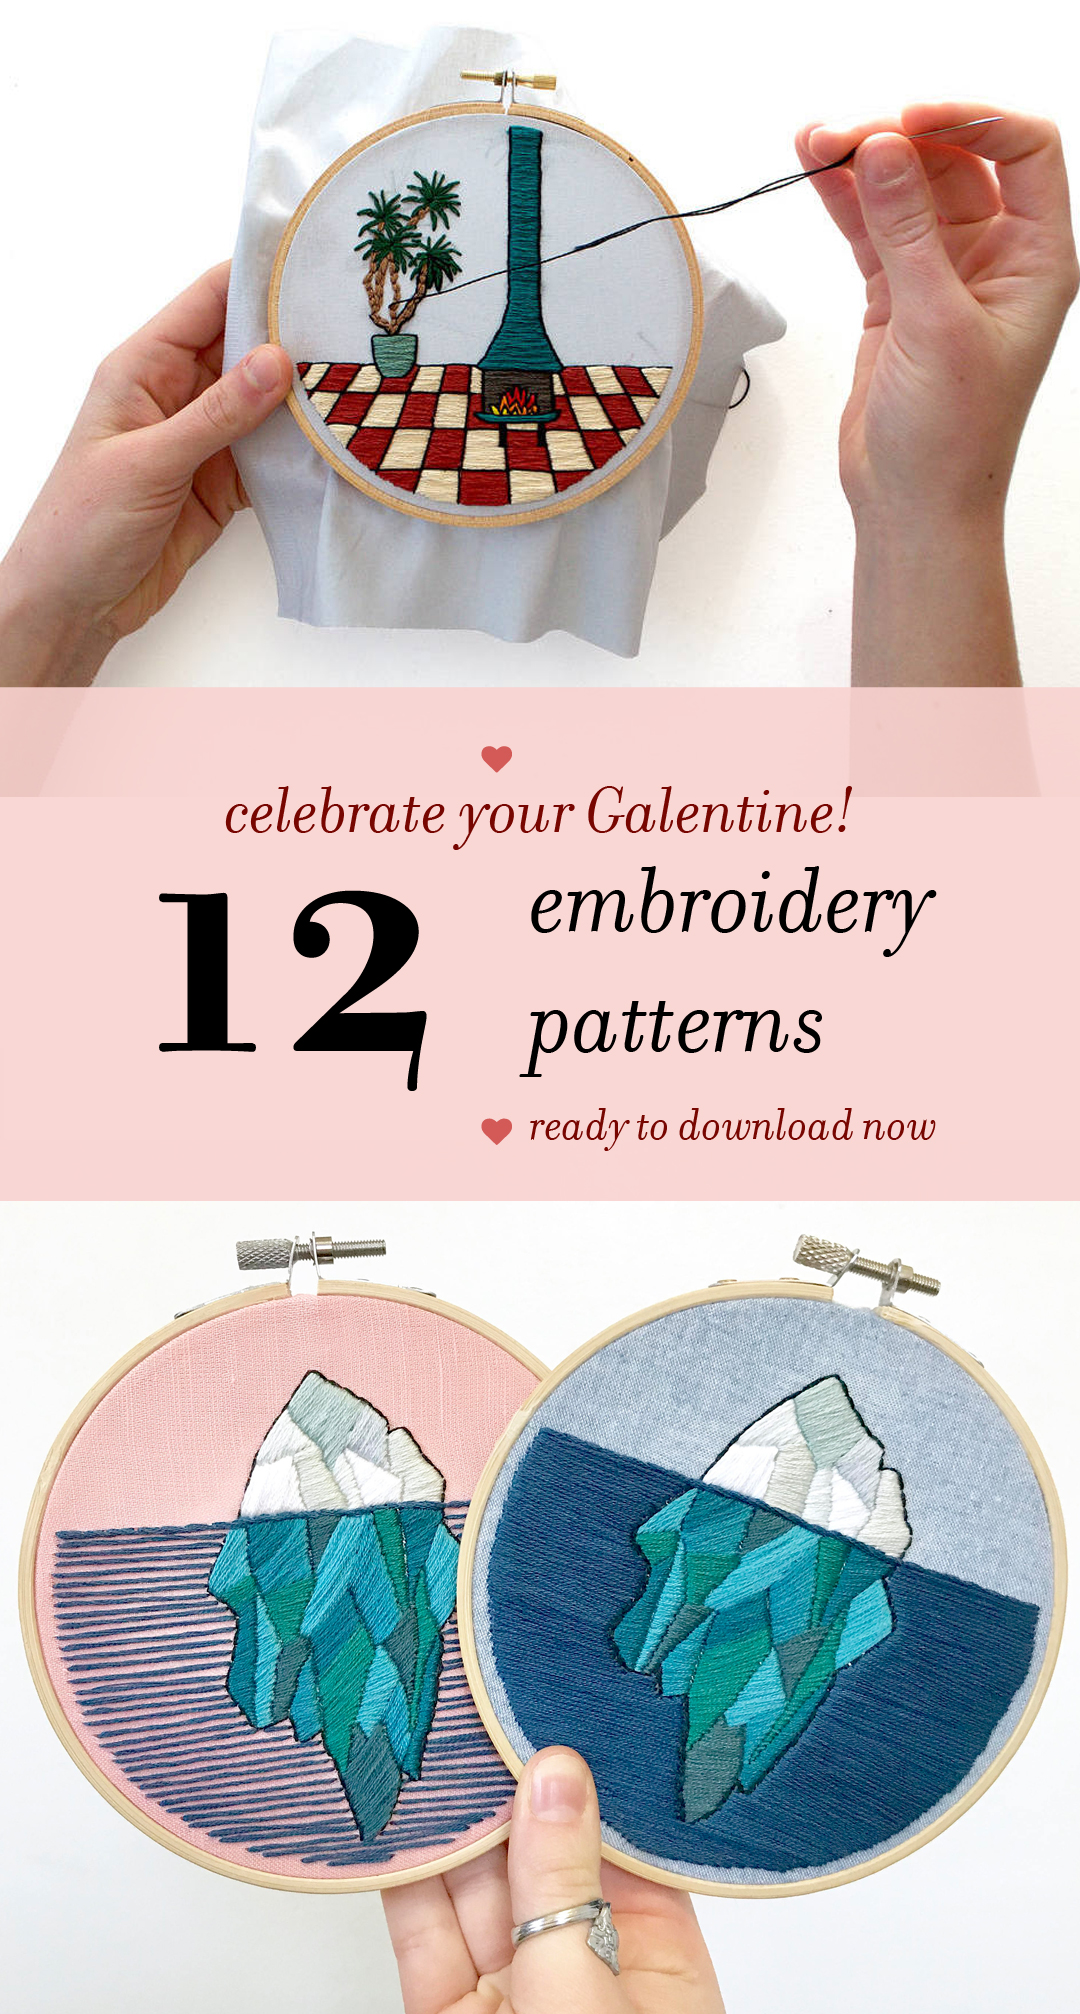 Embroidery patterns to gift on Galentine's Day